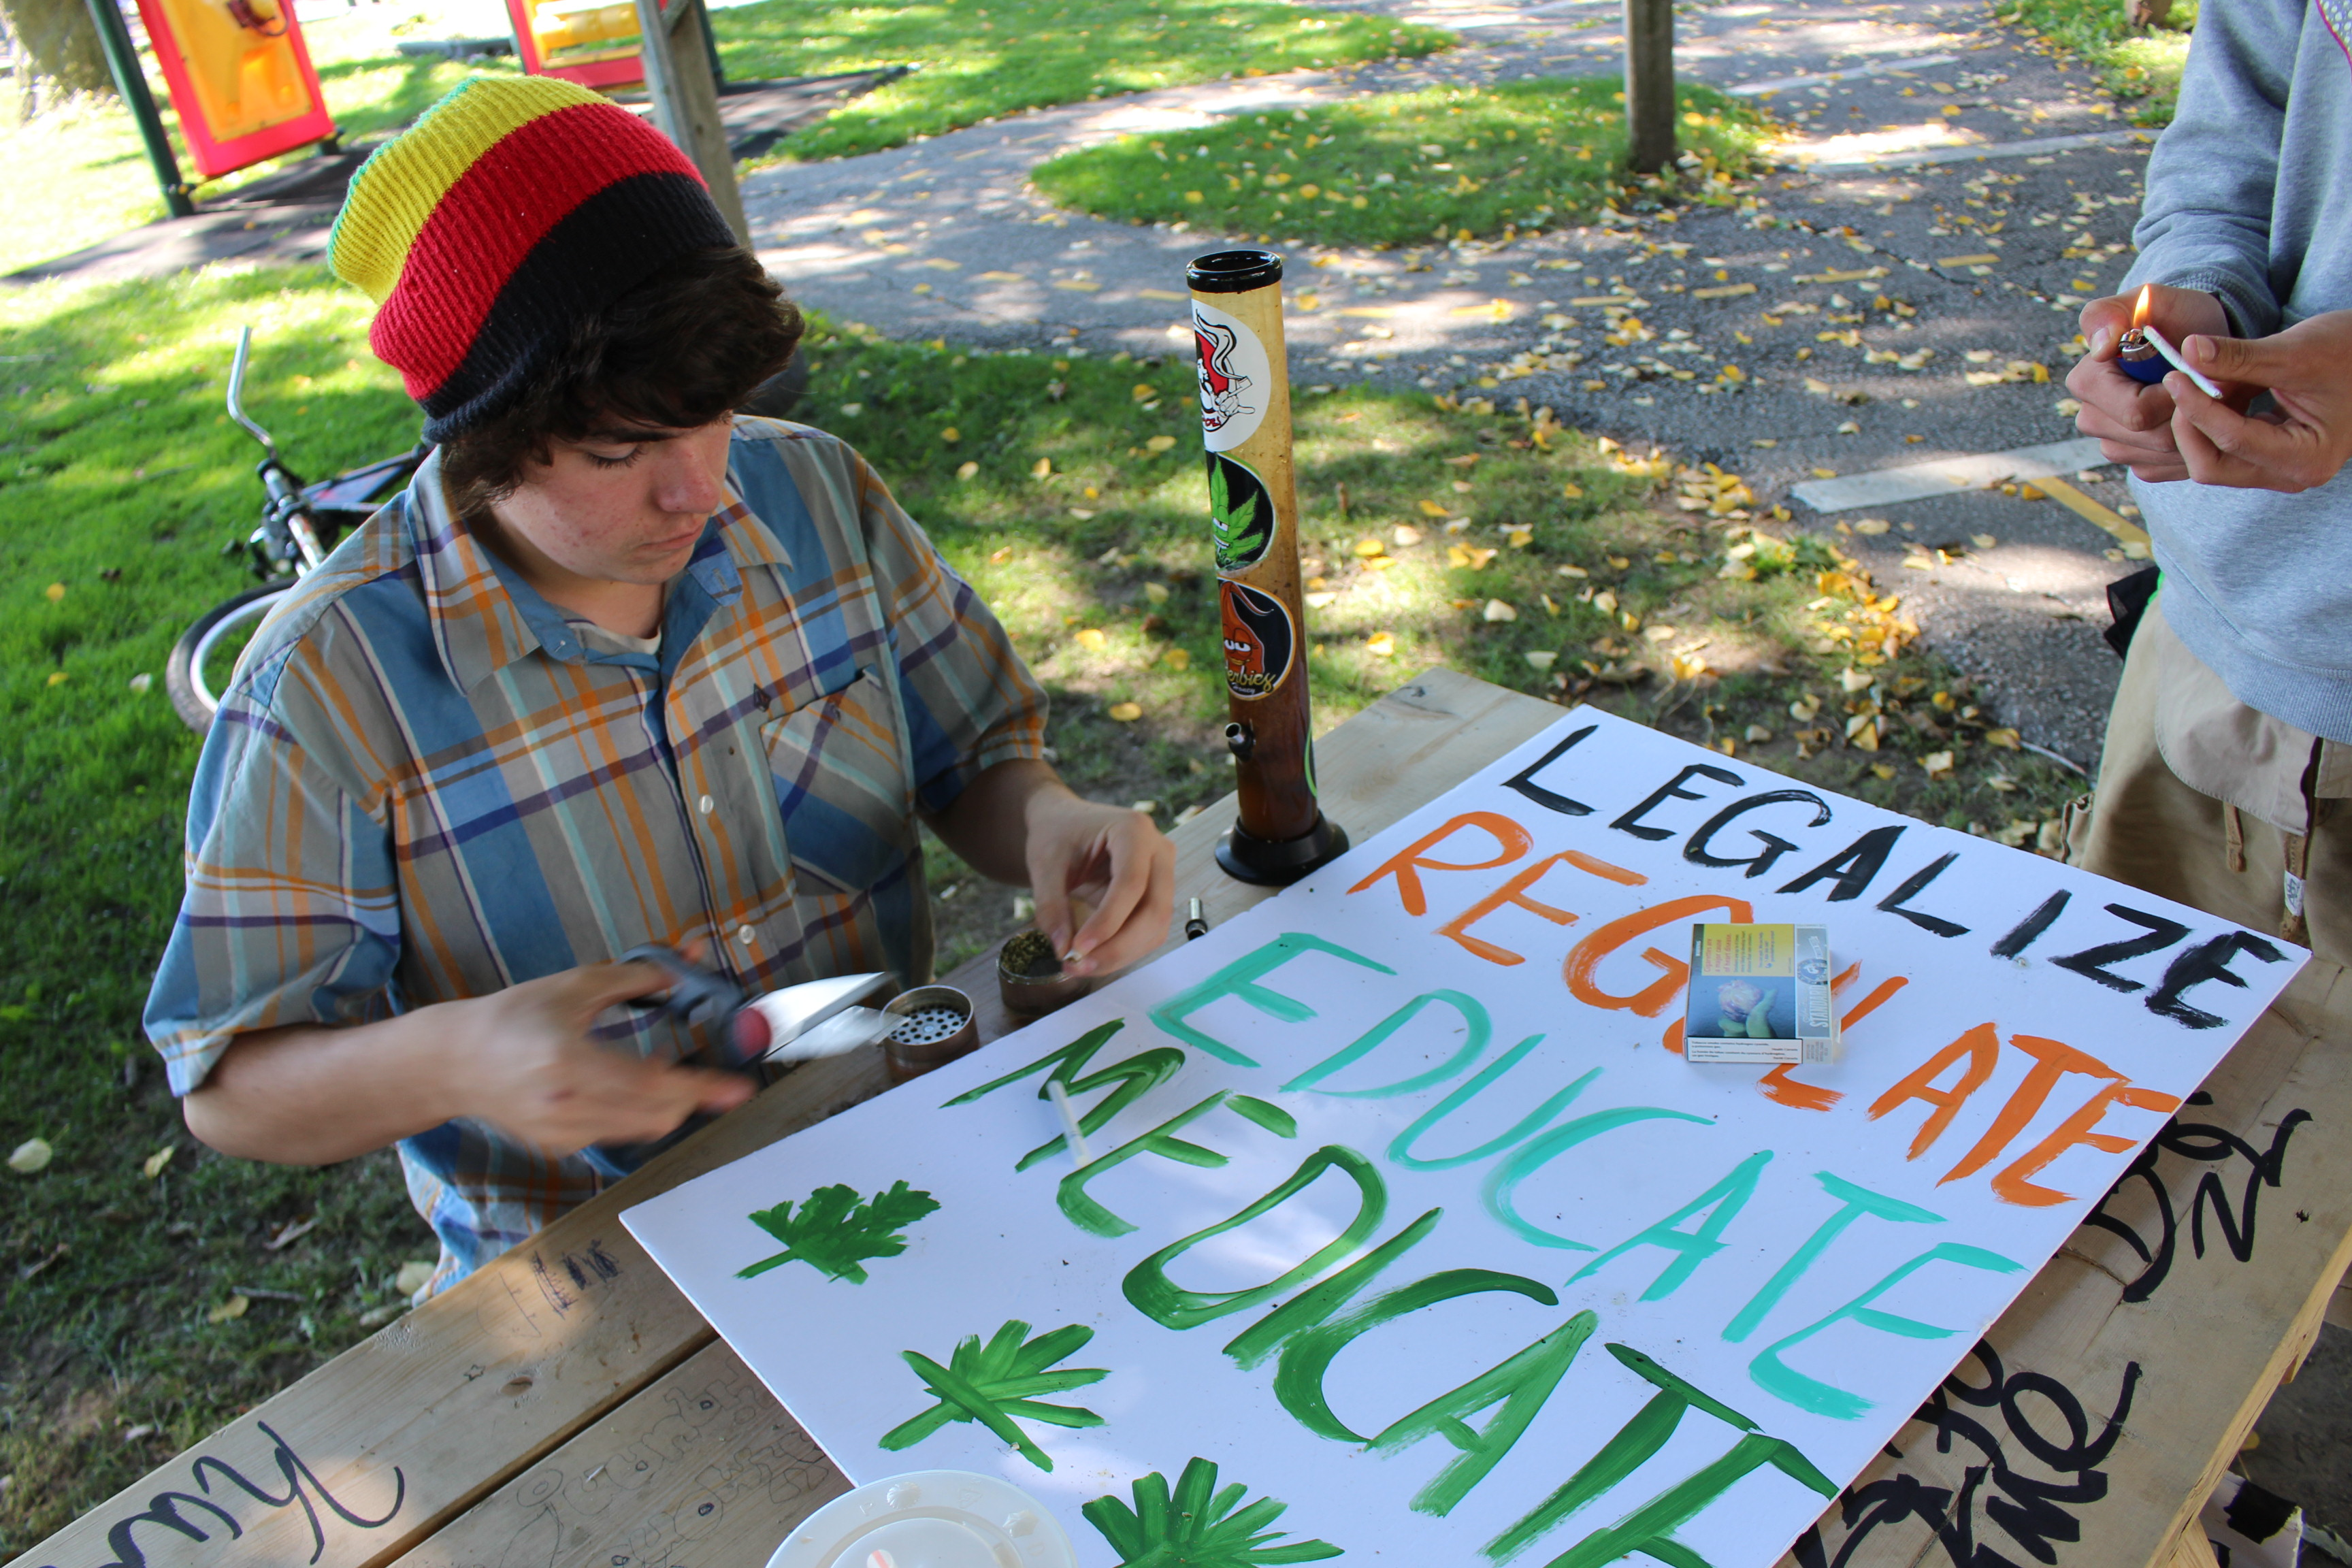 Dozens gather for the 2nd annual Windsor Marijuana March on September 27, 2014. (Photo by Jason Viau)